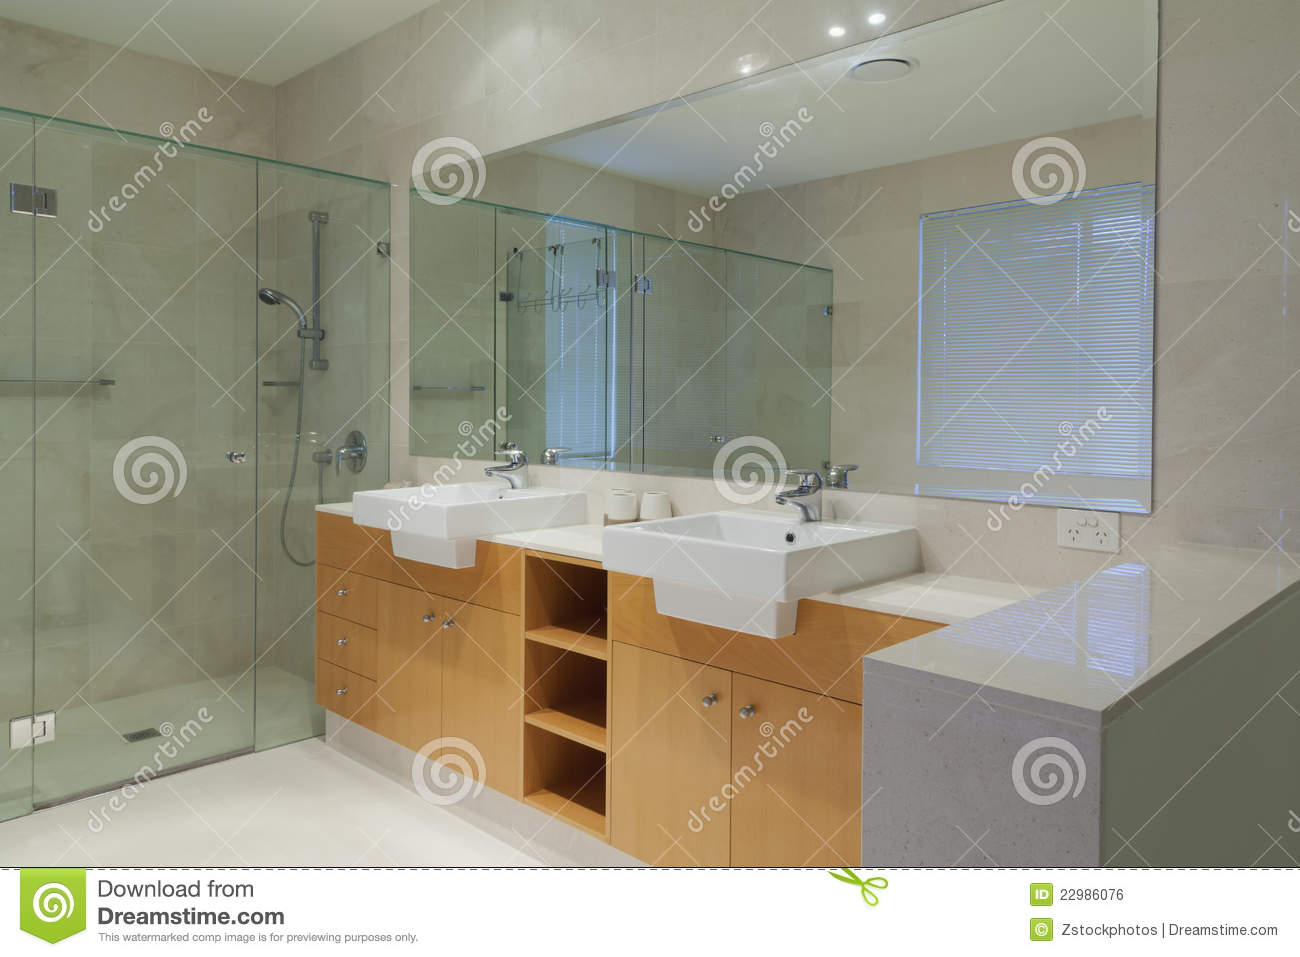 Twin Bathroom Royalty Free Stock Image - Image: 22986076